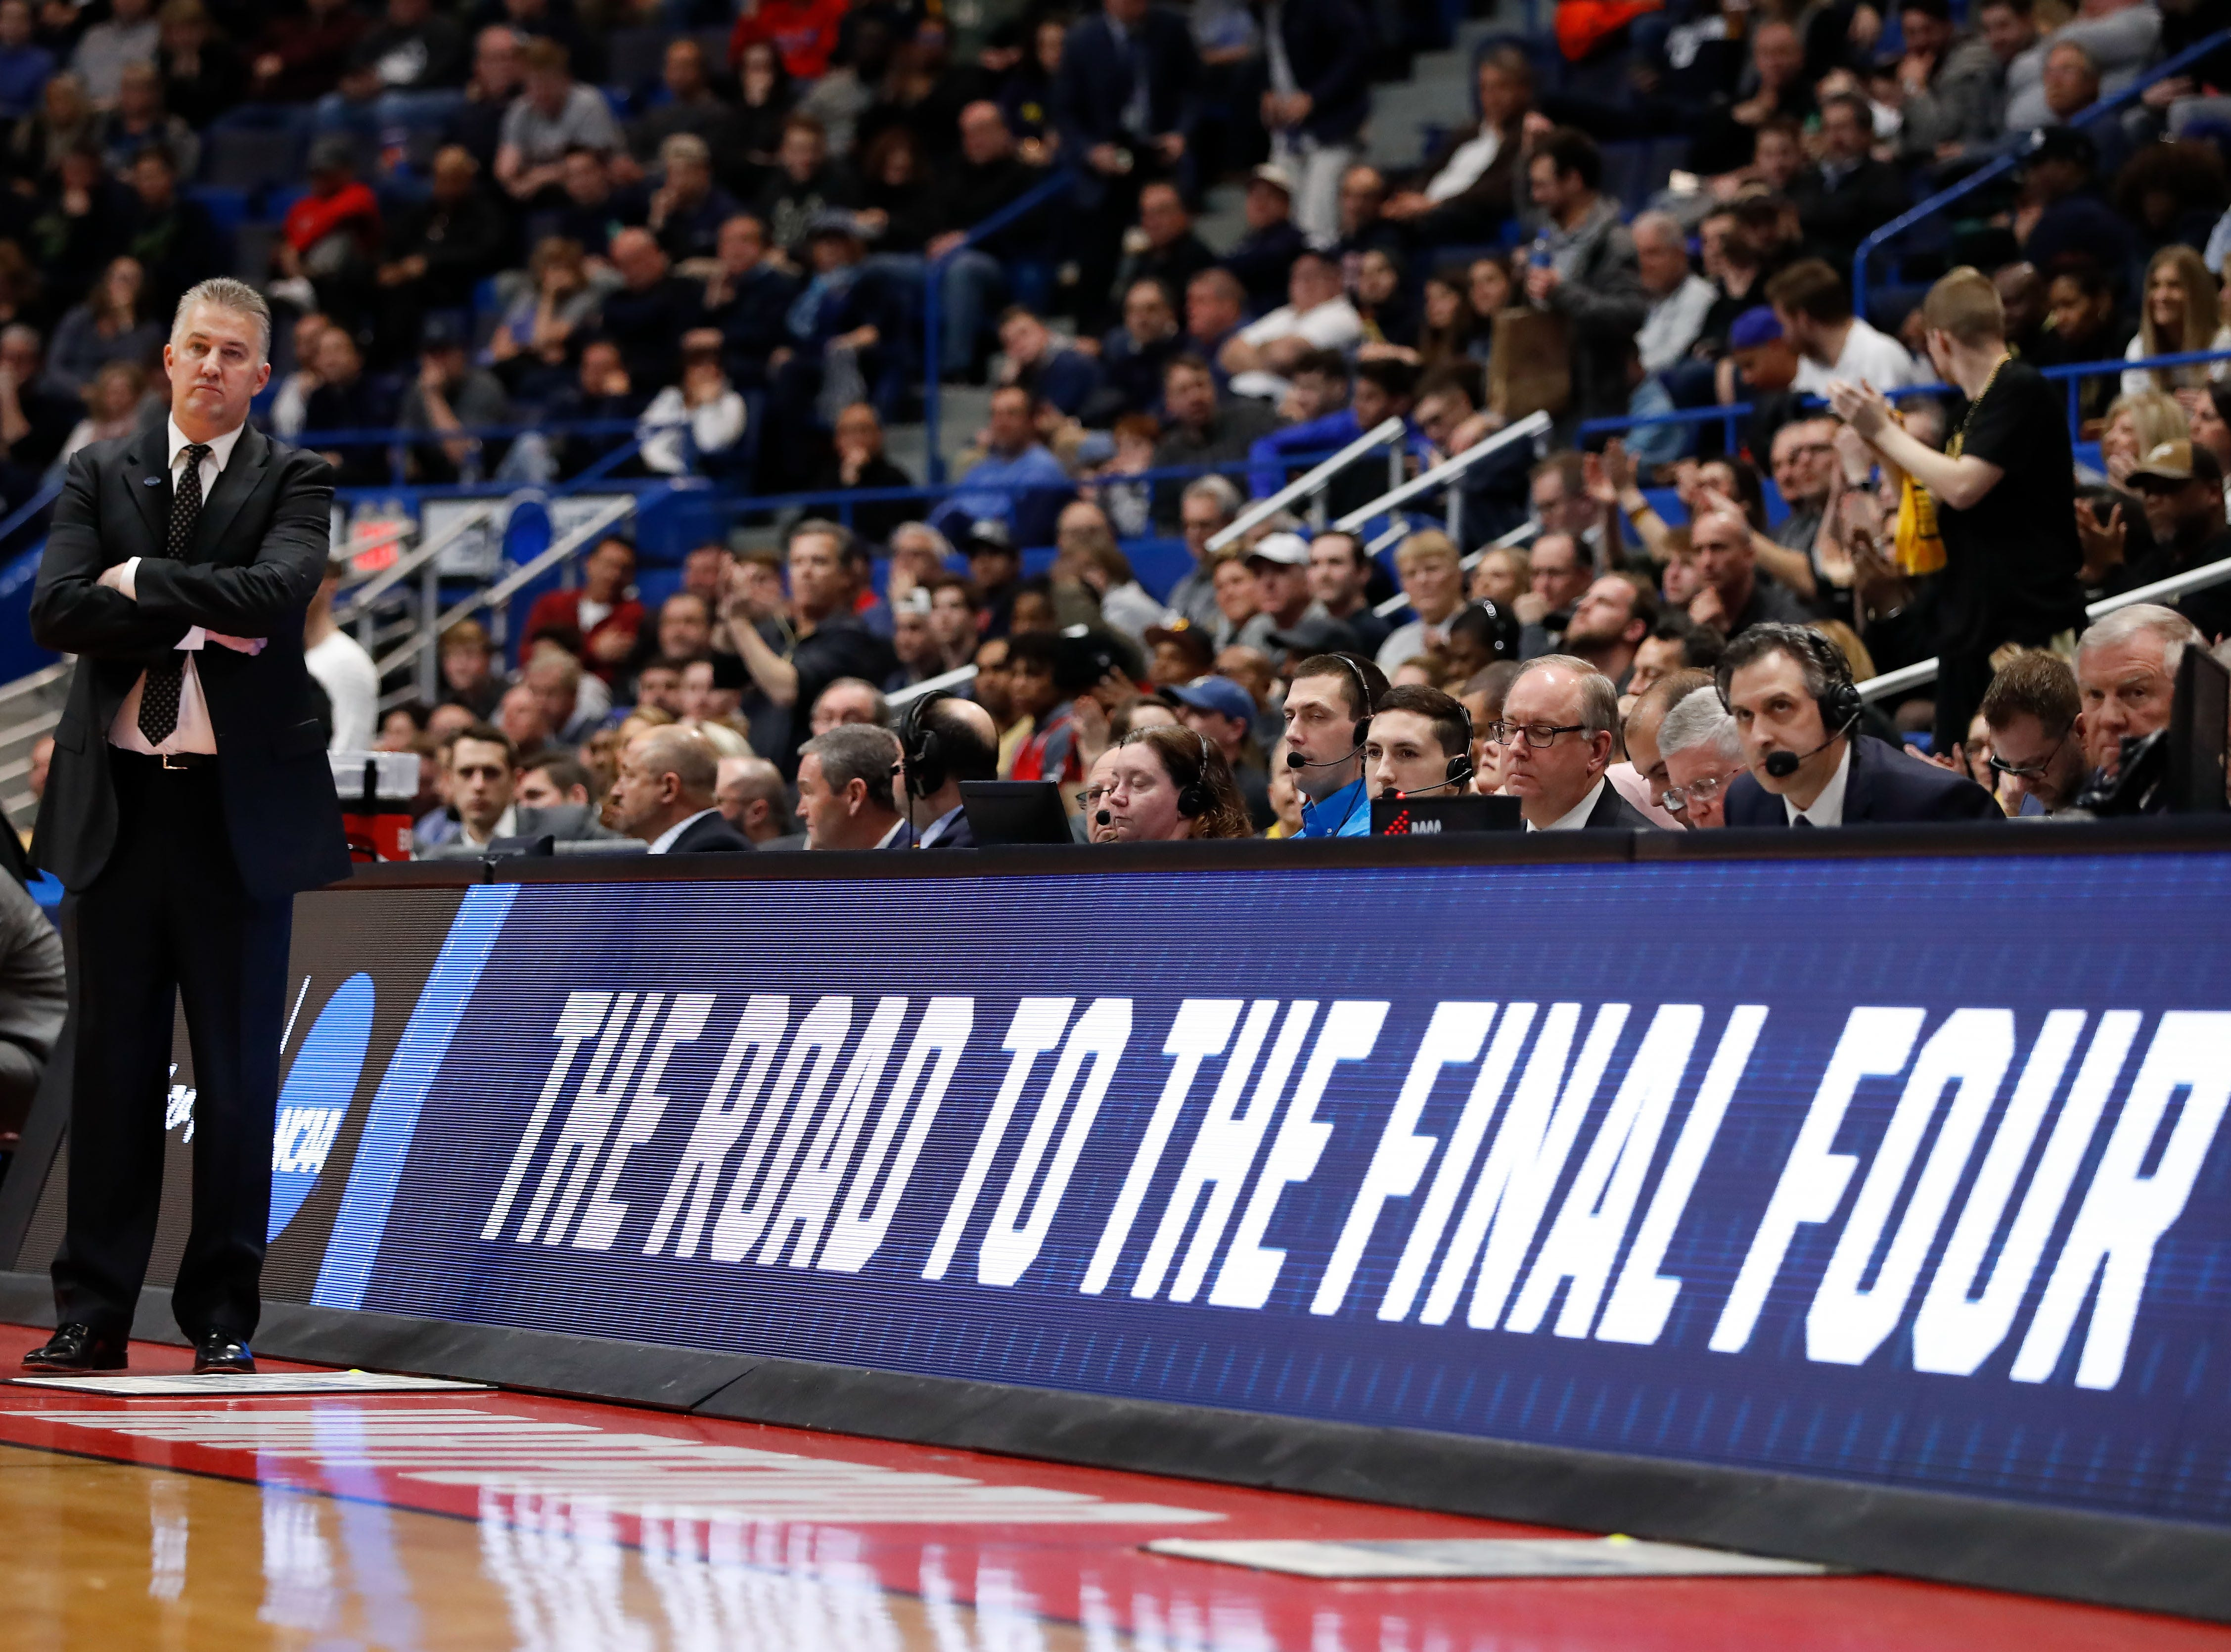 Mar 23, 2019; Hartford, CT, USA; Purdue Boilermakers head coach Matt Painter watches a play against the Villanova Wildcats during the second half of a game in the second round of the 2019 NCAA Tournament at XL Center. Mandatory Credit: David Butler II-USA TODAY Sports